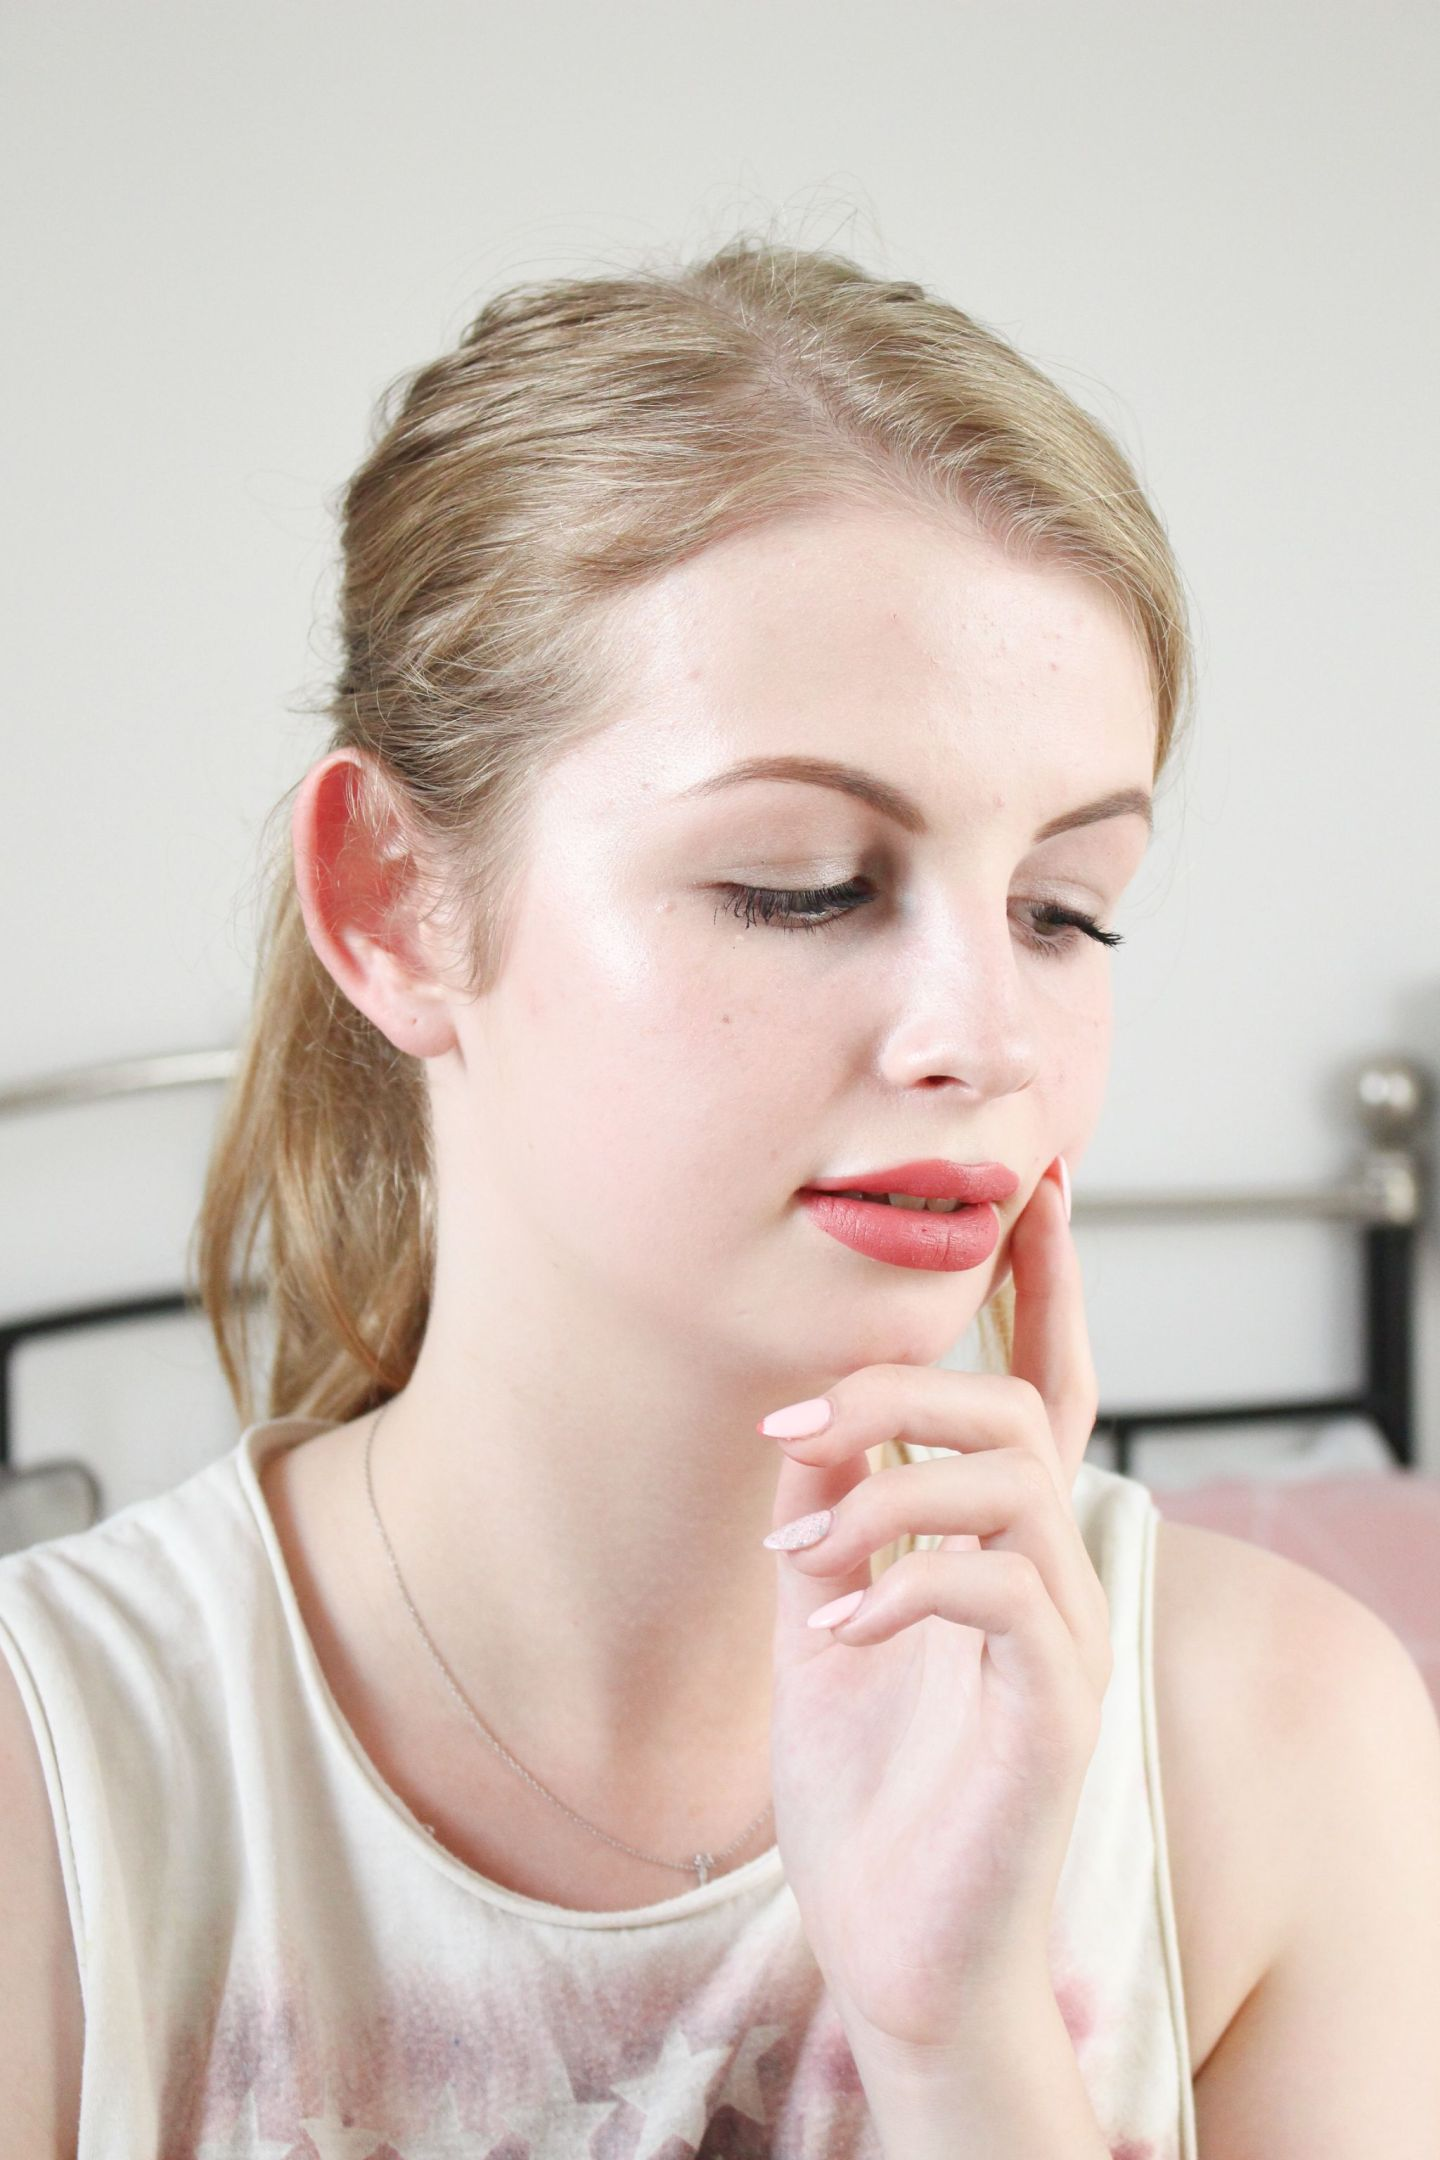 Charlotte Tilbury Pin Up Pink lipstick on a pale female